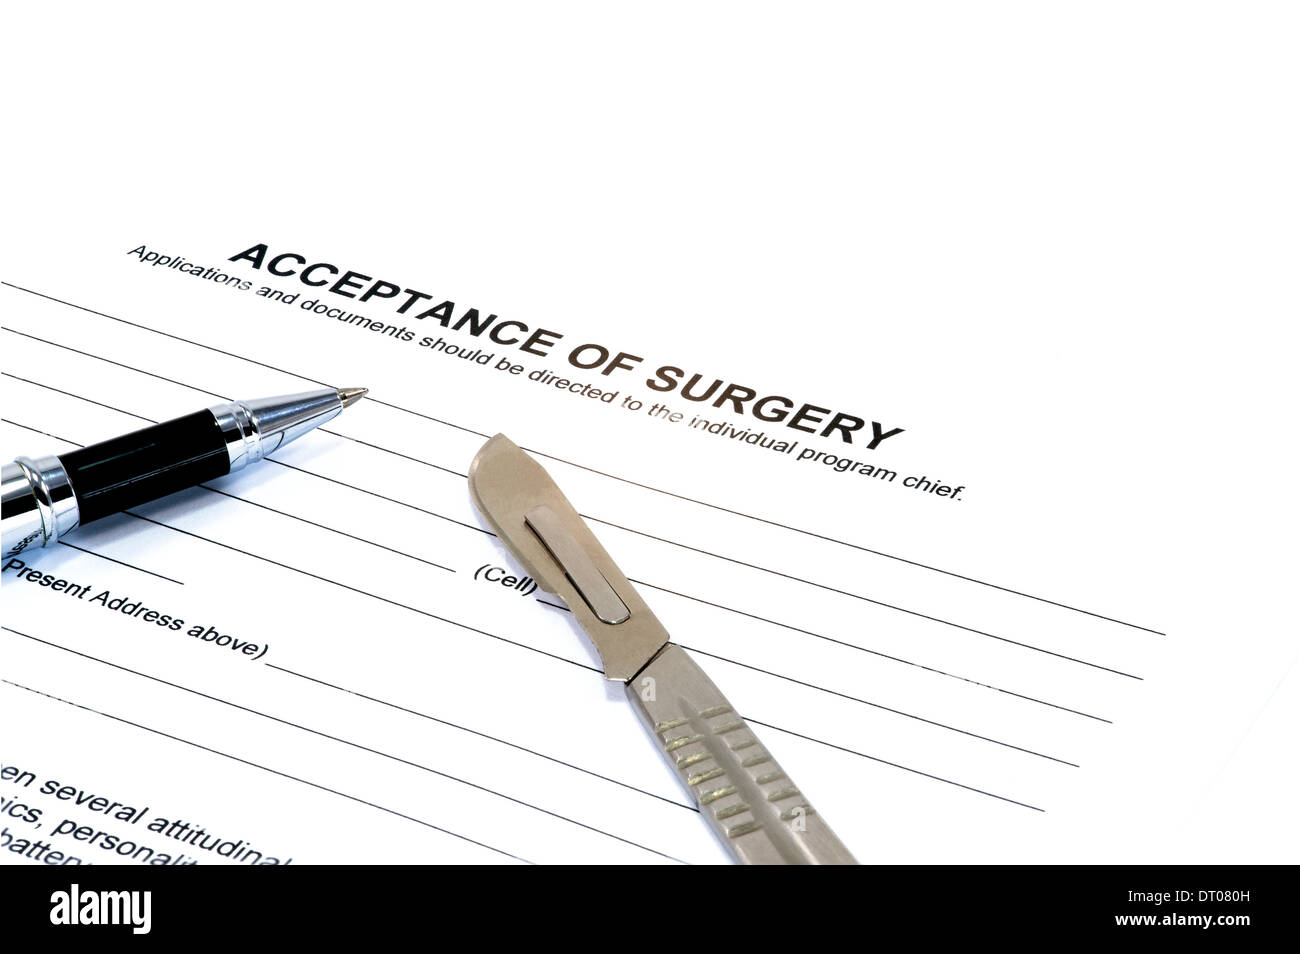 acceptance of surgery form hospital law pen Isolated on white - Stock Image